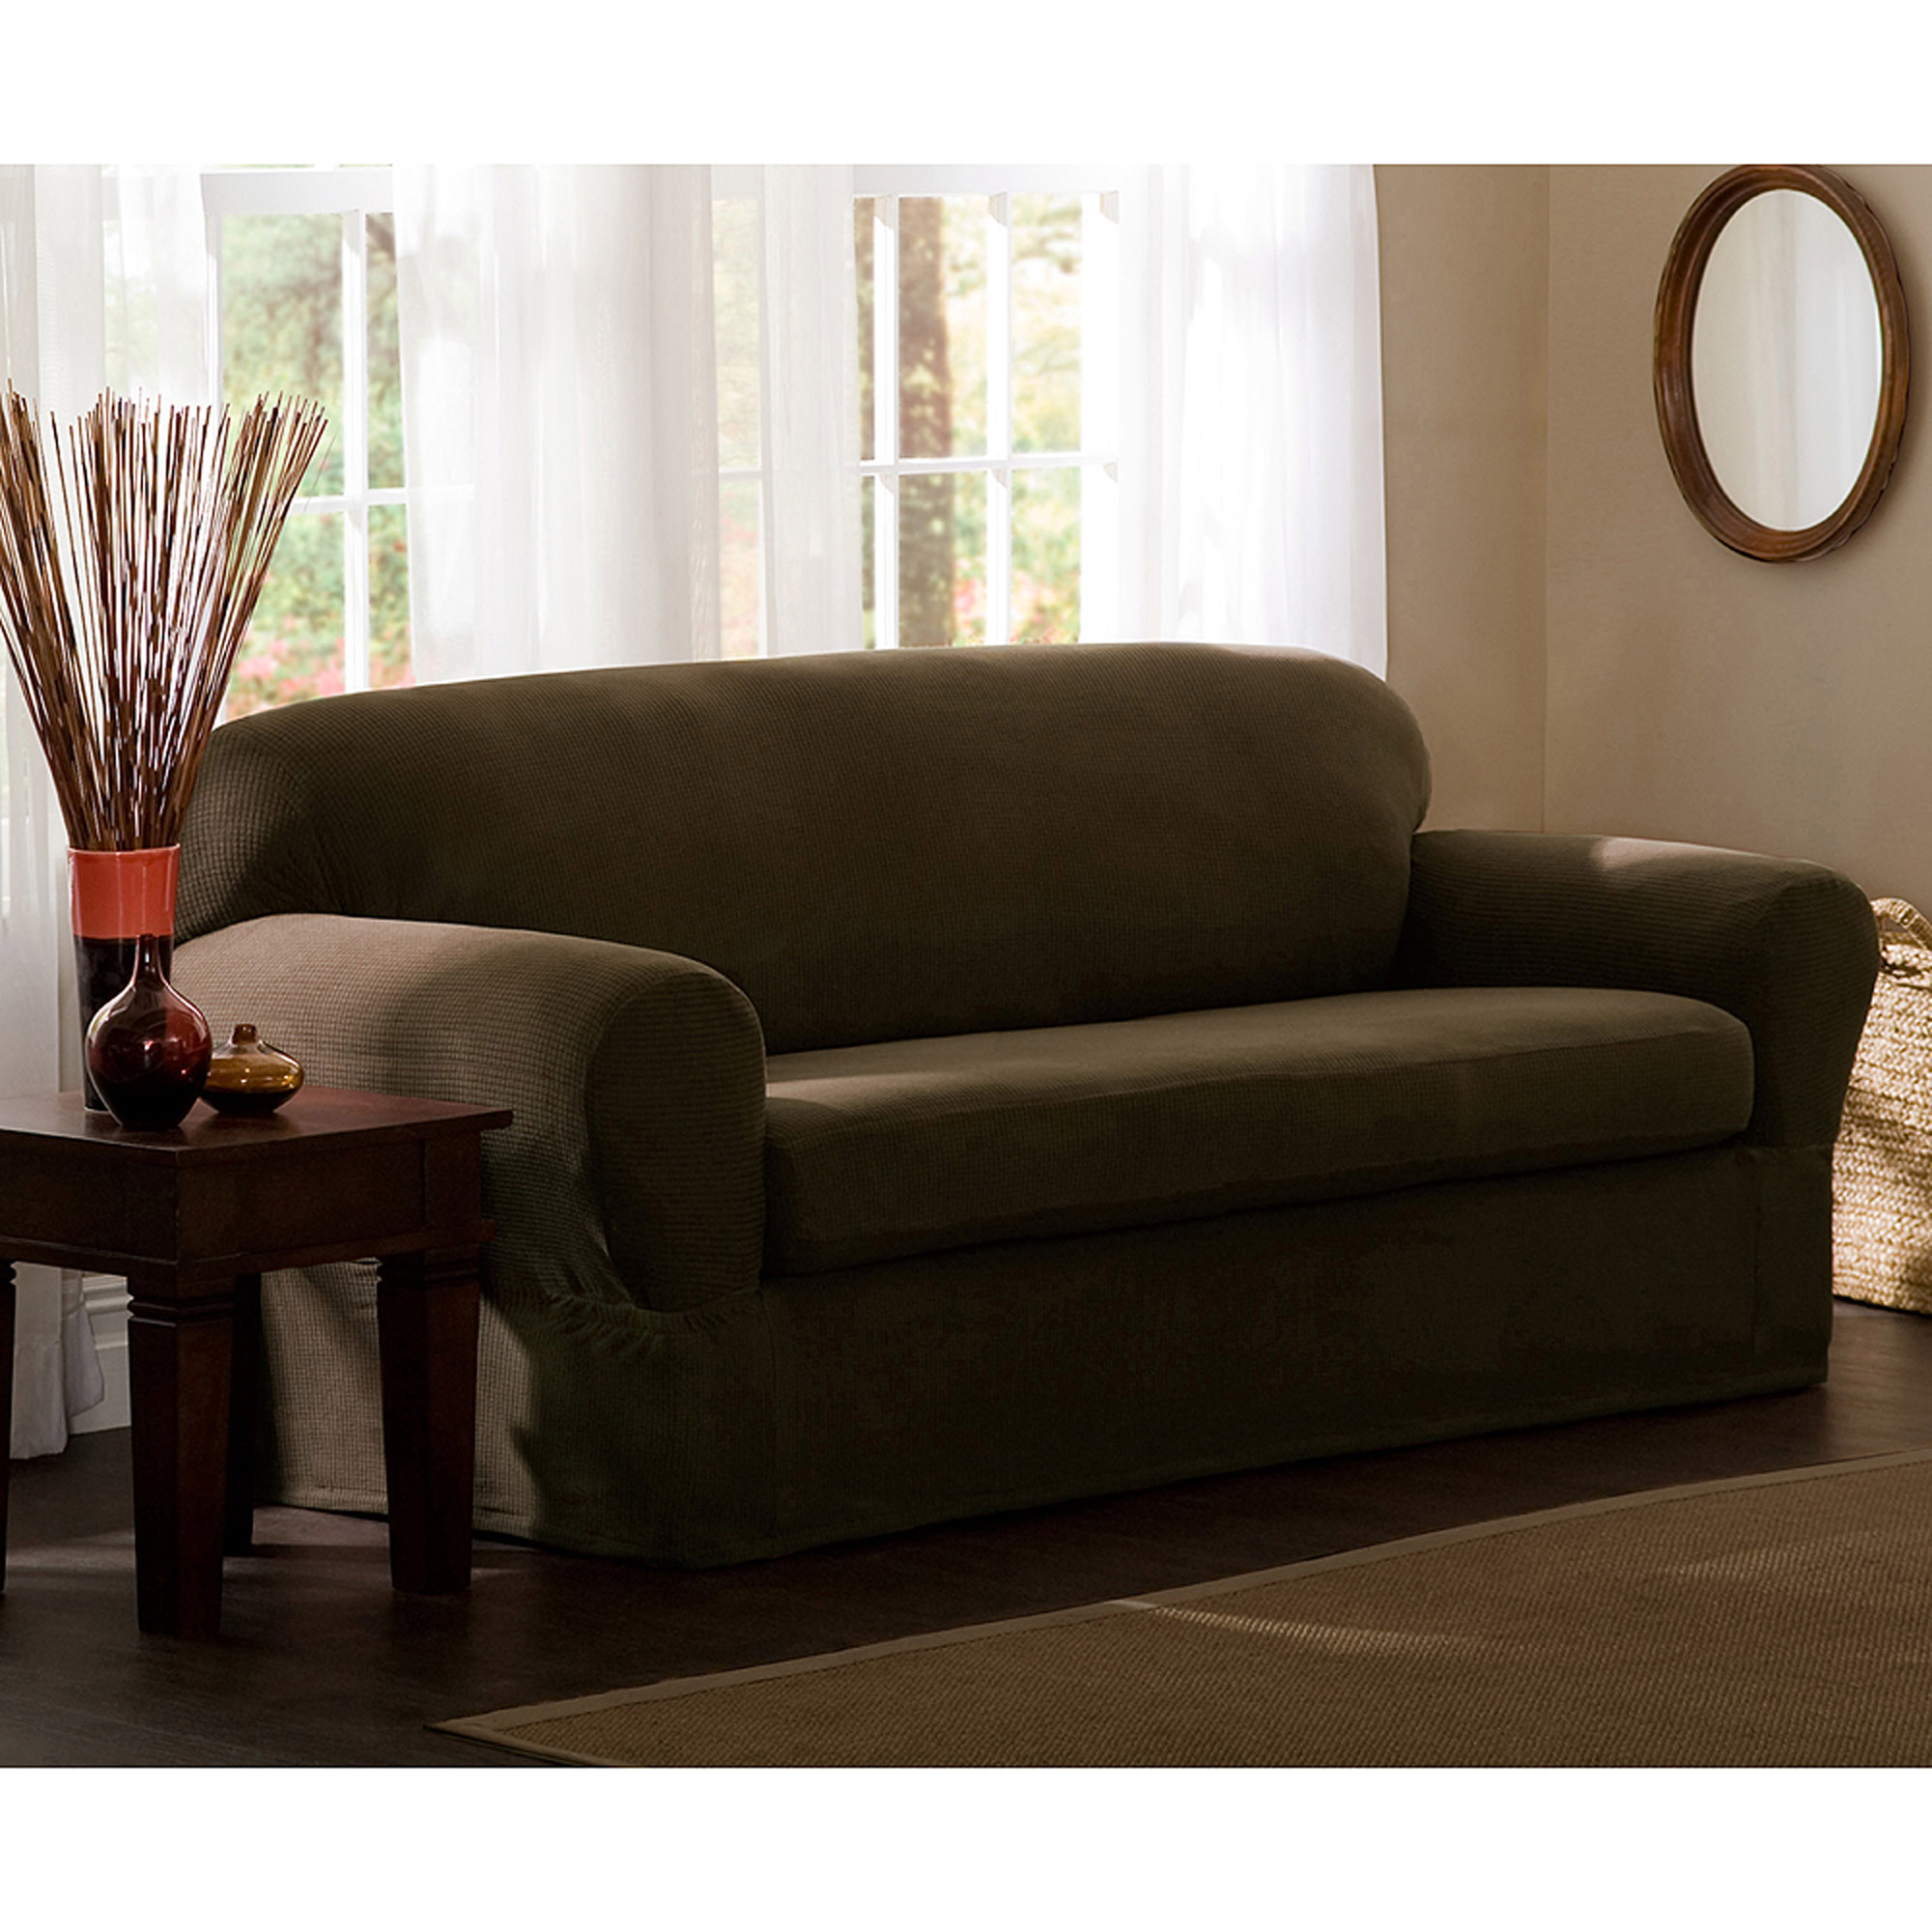 Better Homes and Gardens e Piece Stretch Fine Corduroy Recliner